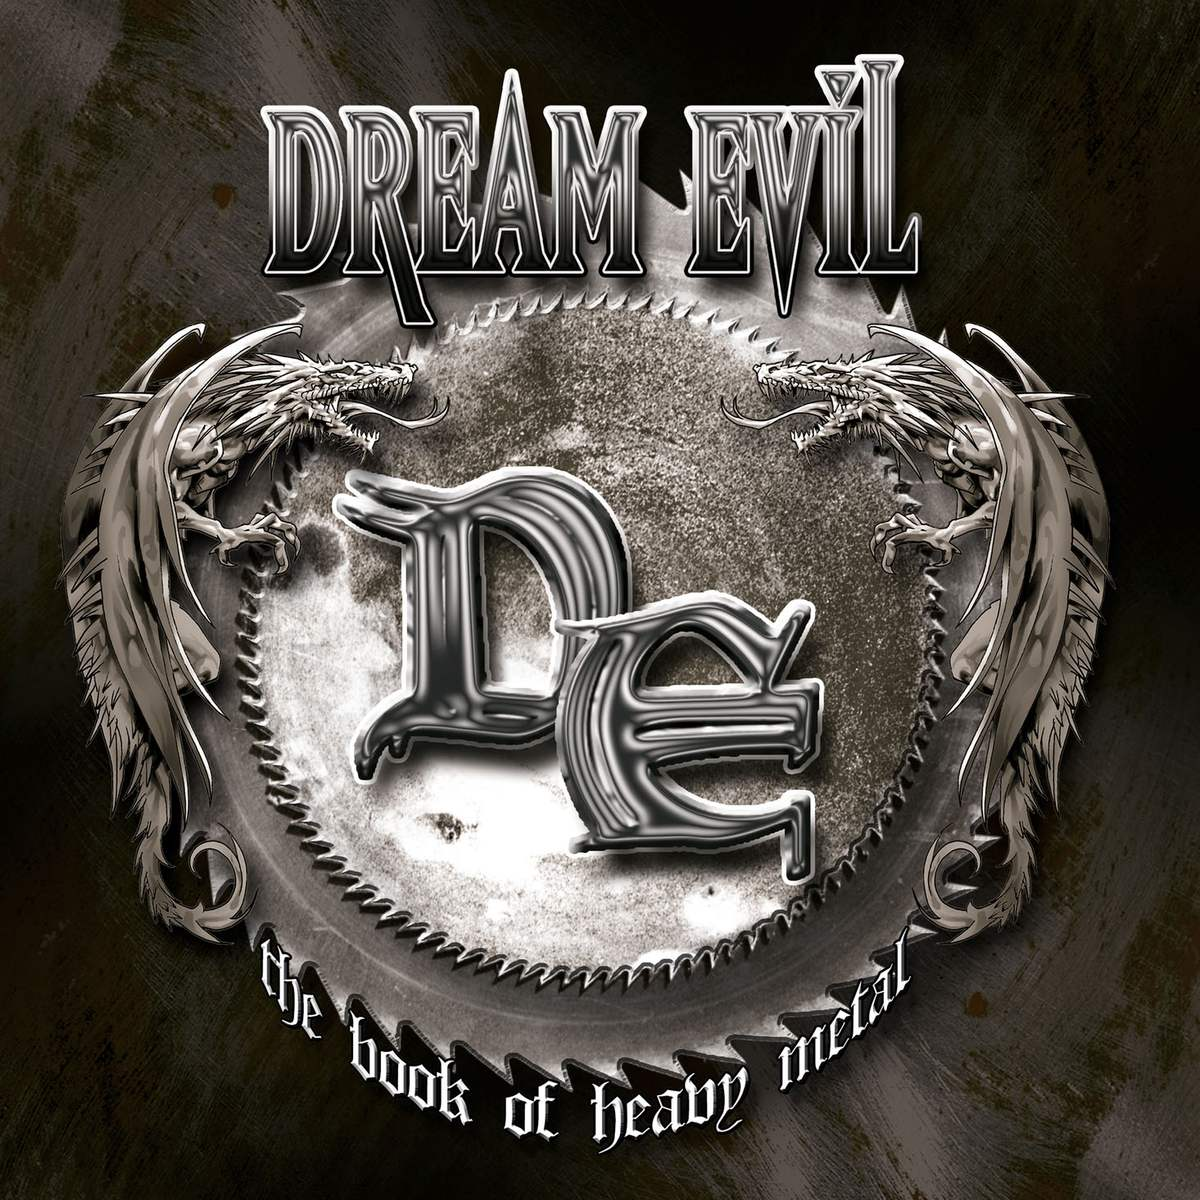 Dream Evil - The Book of Heavy Metal - Reviews